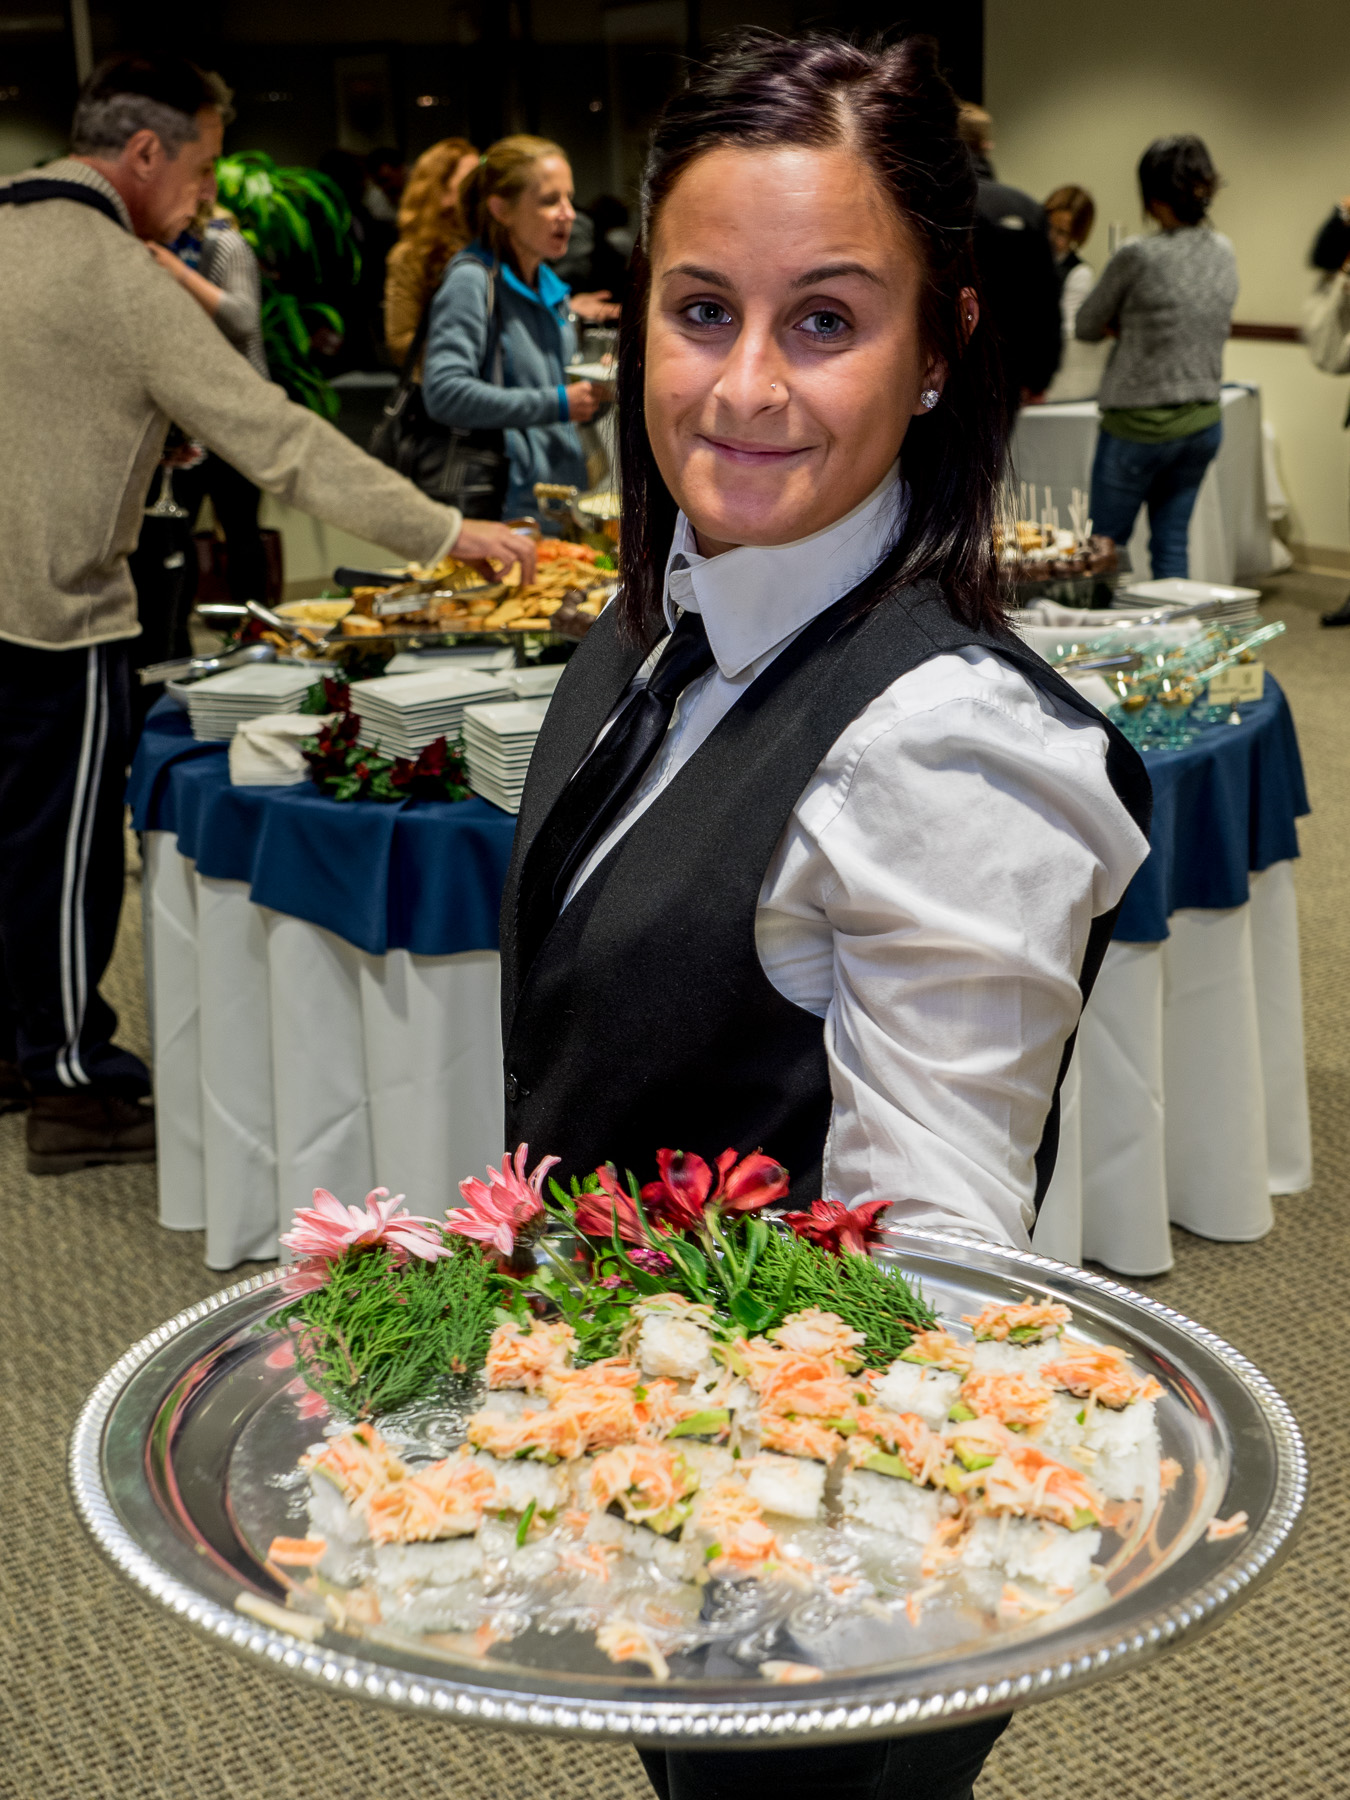 Full Service Catering Corporate Image Dining Services